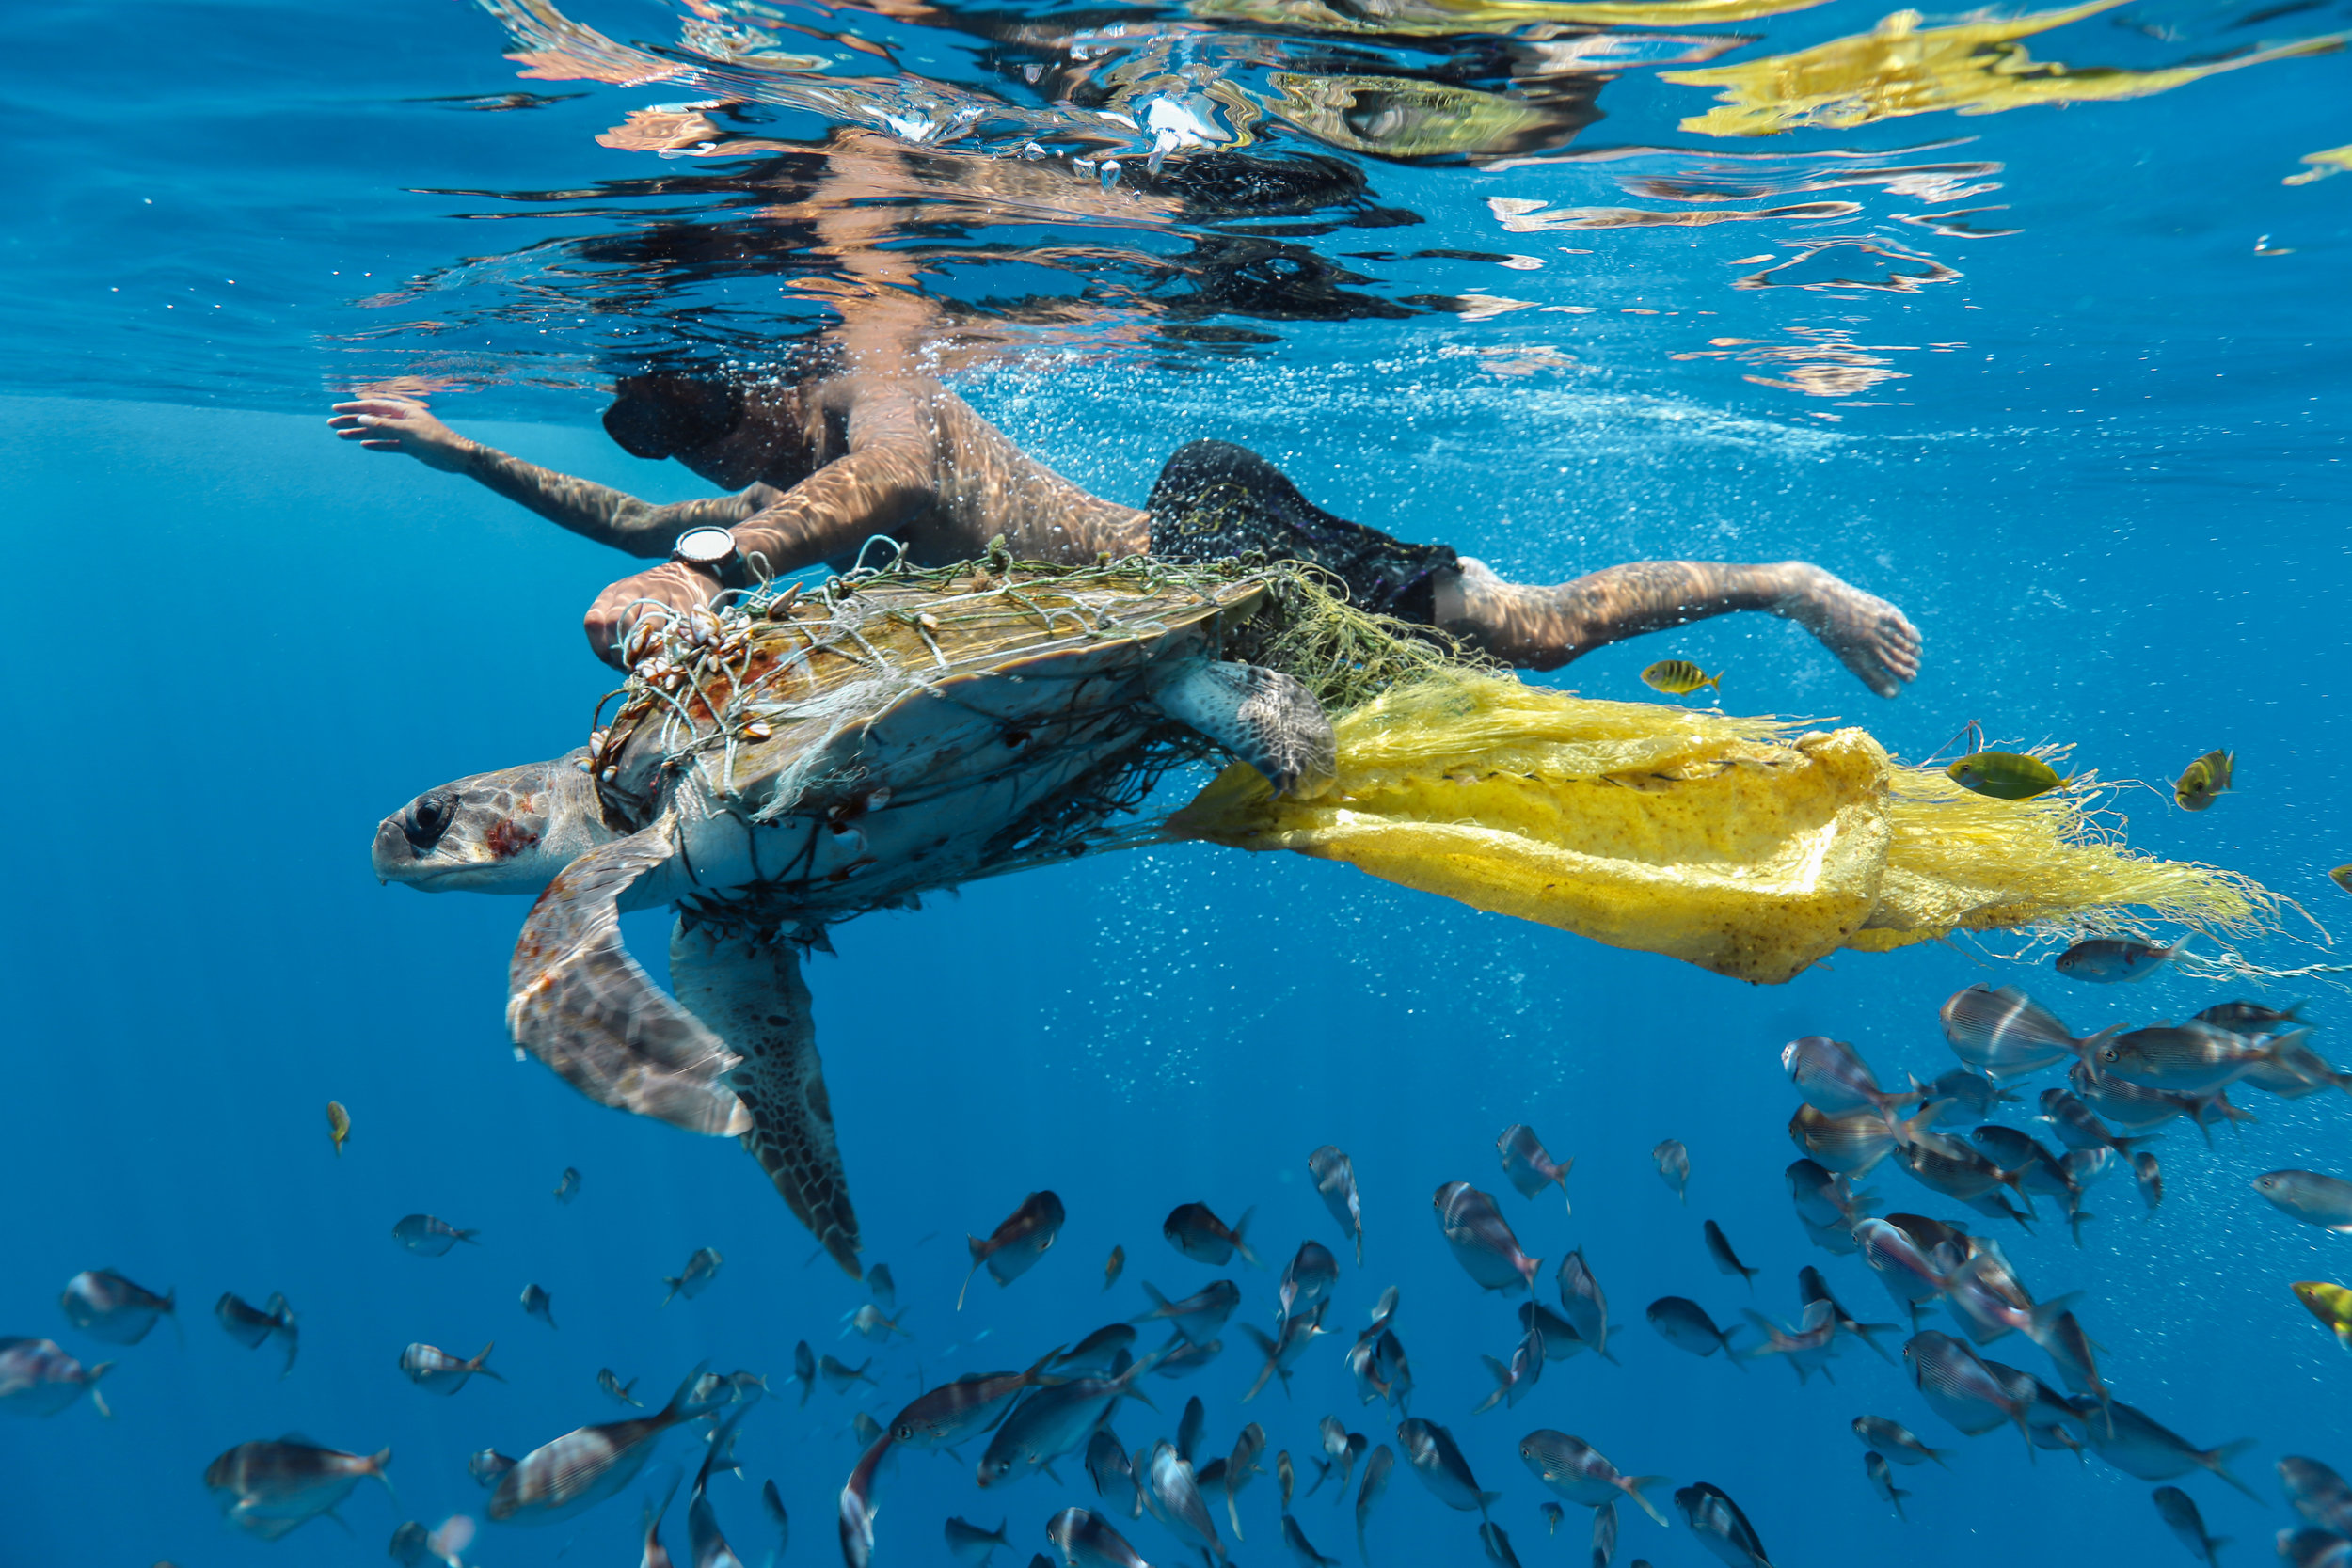 Jing Li, Save Turtle, CIWEM Environmental Photographer of the Year 2018